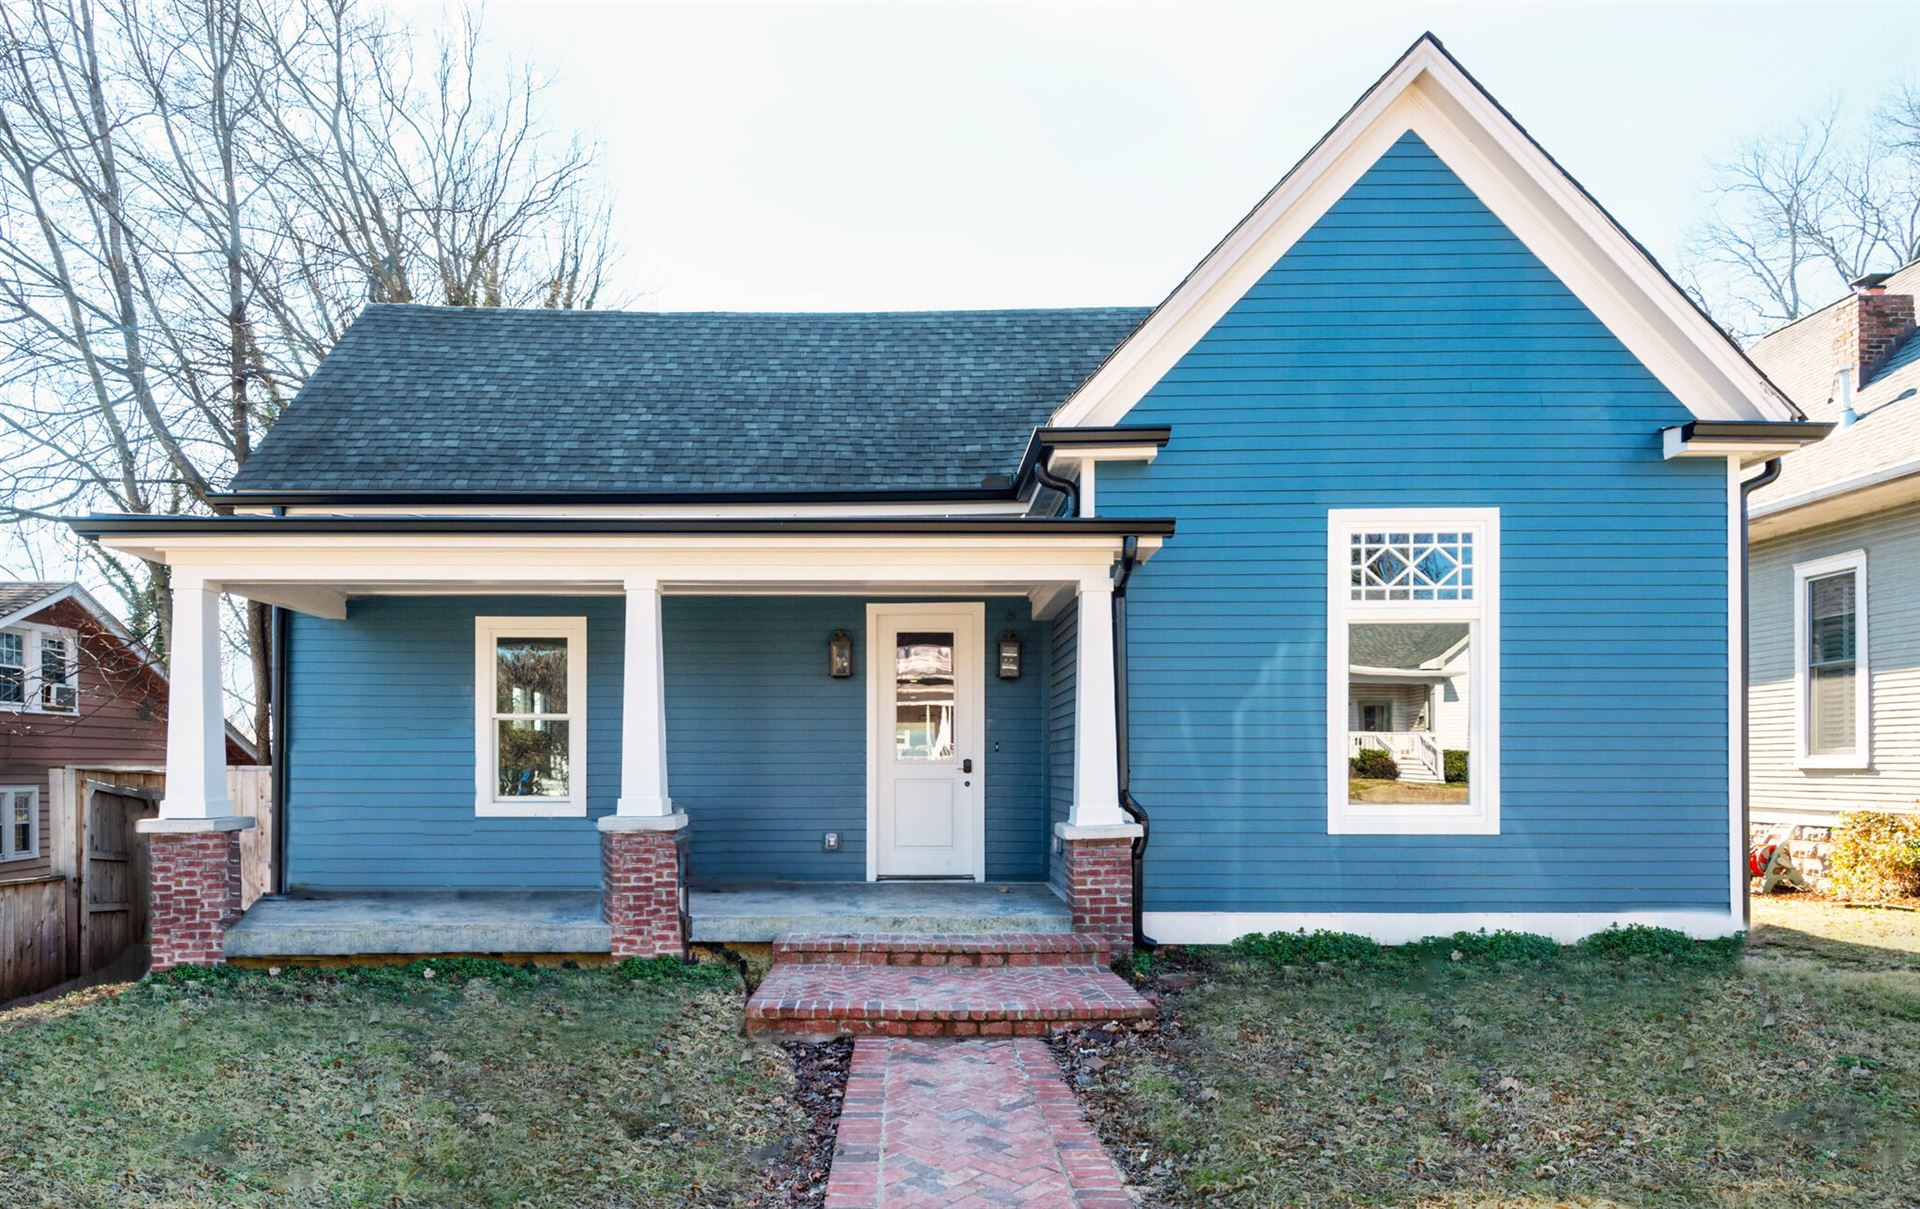 1005 Paris Ave, Nashville, TN 37204 - MLS#: 2227418